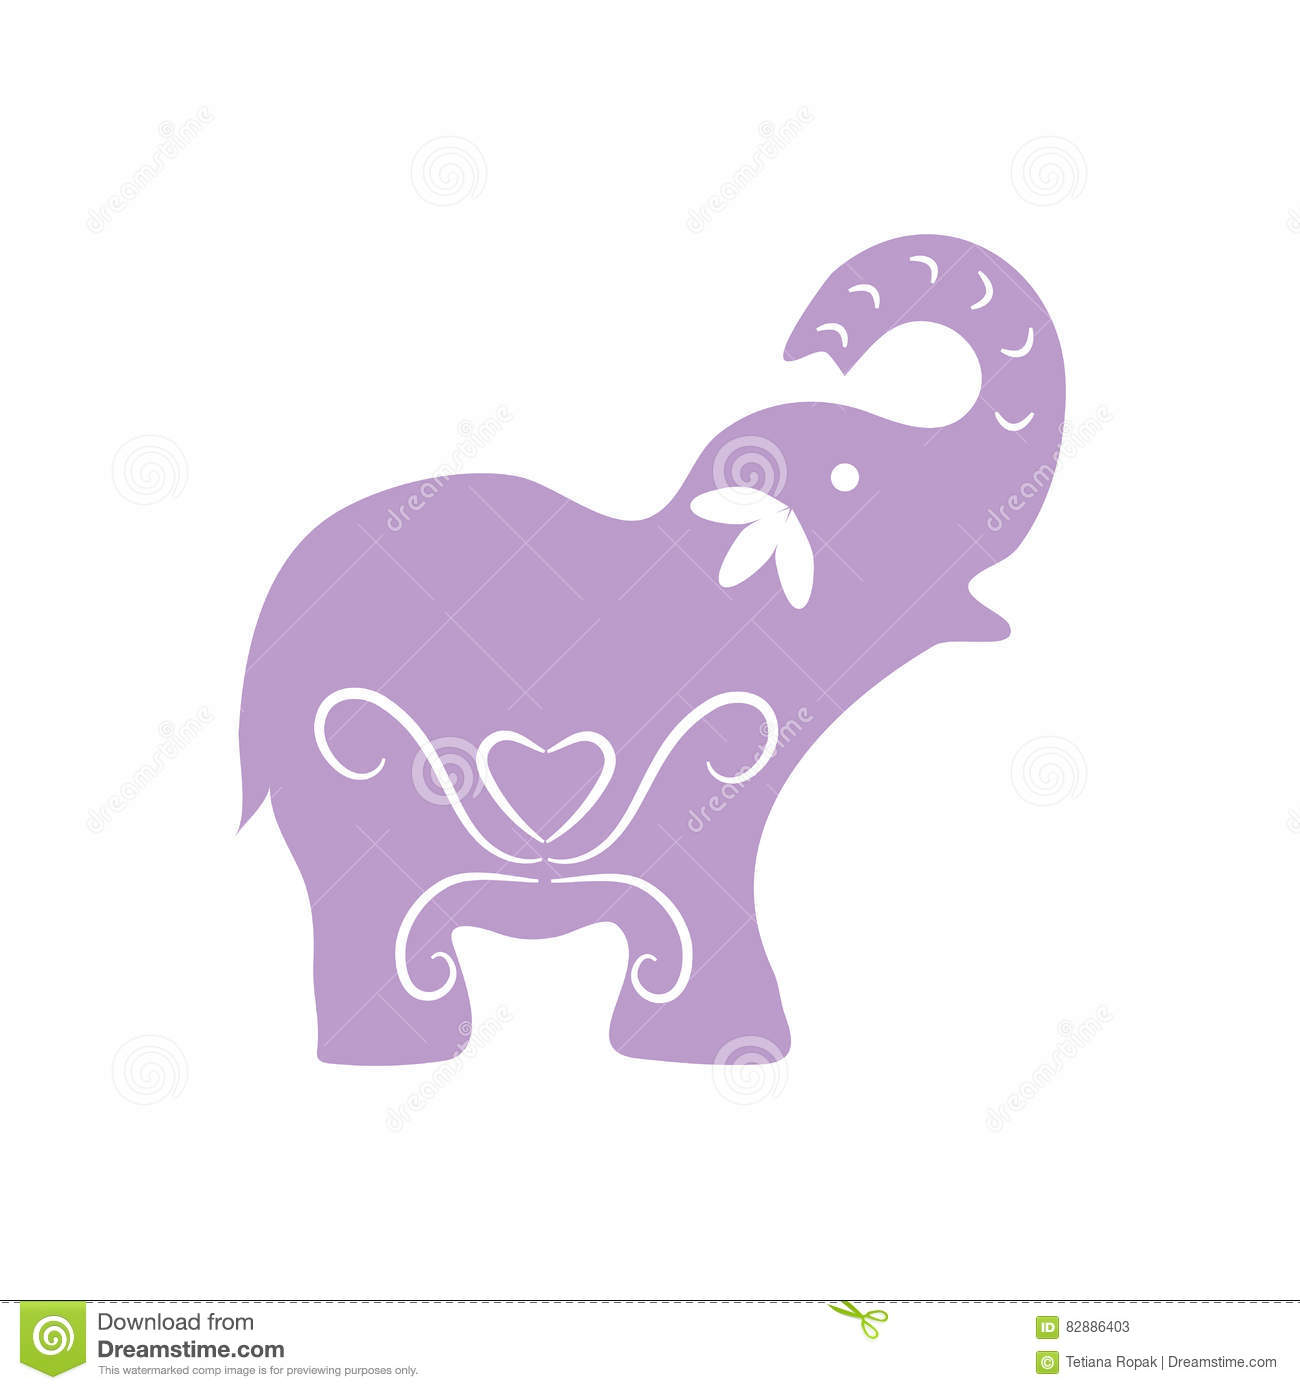 eco icon violet elephant symbol vector illustration